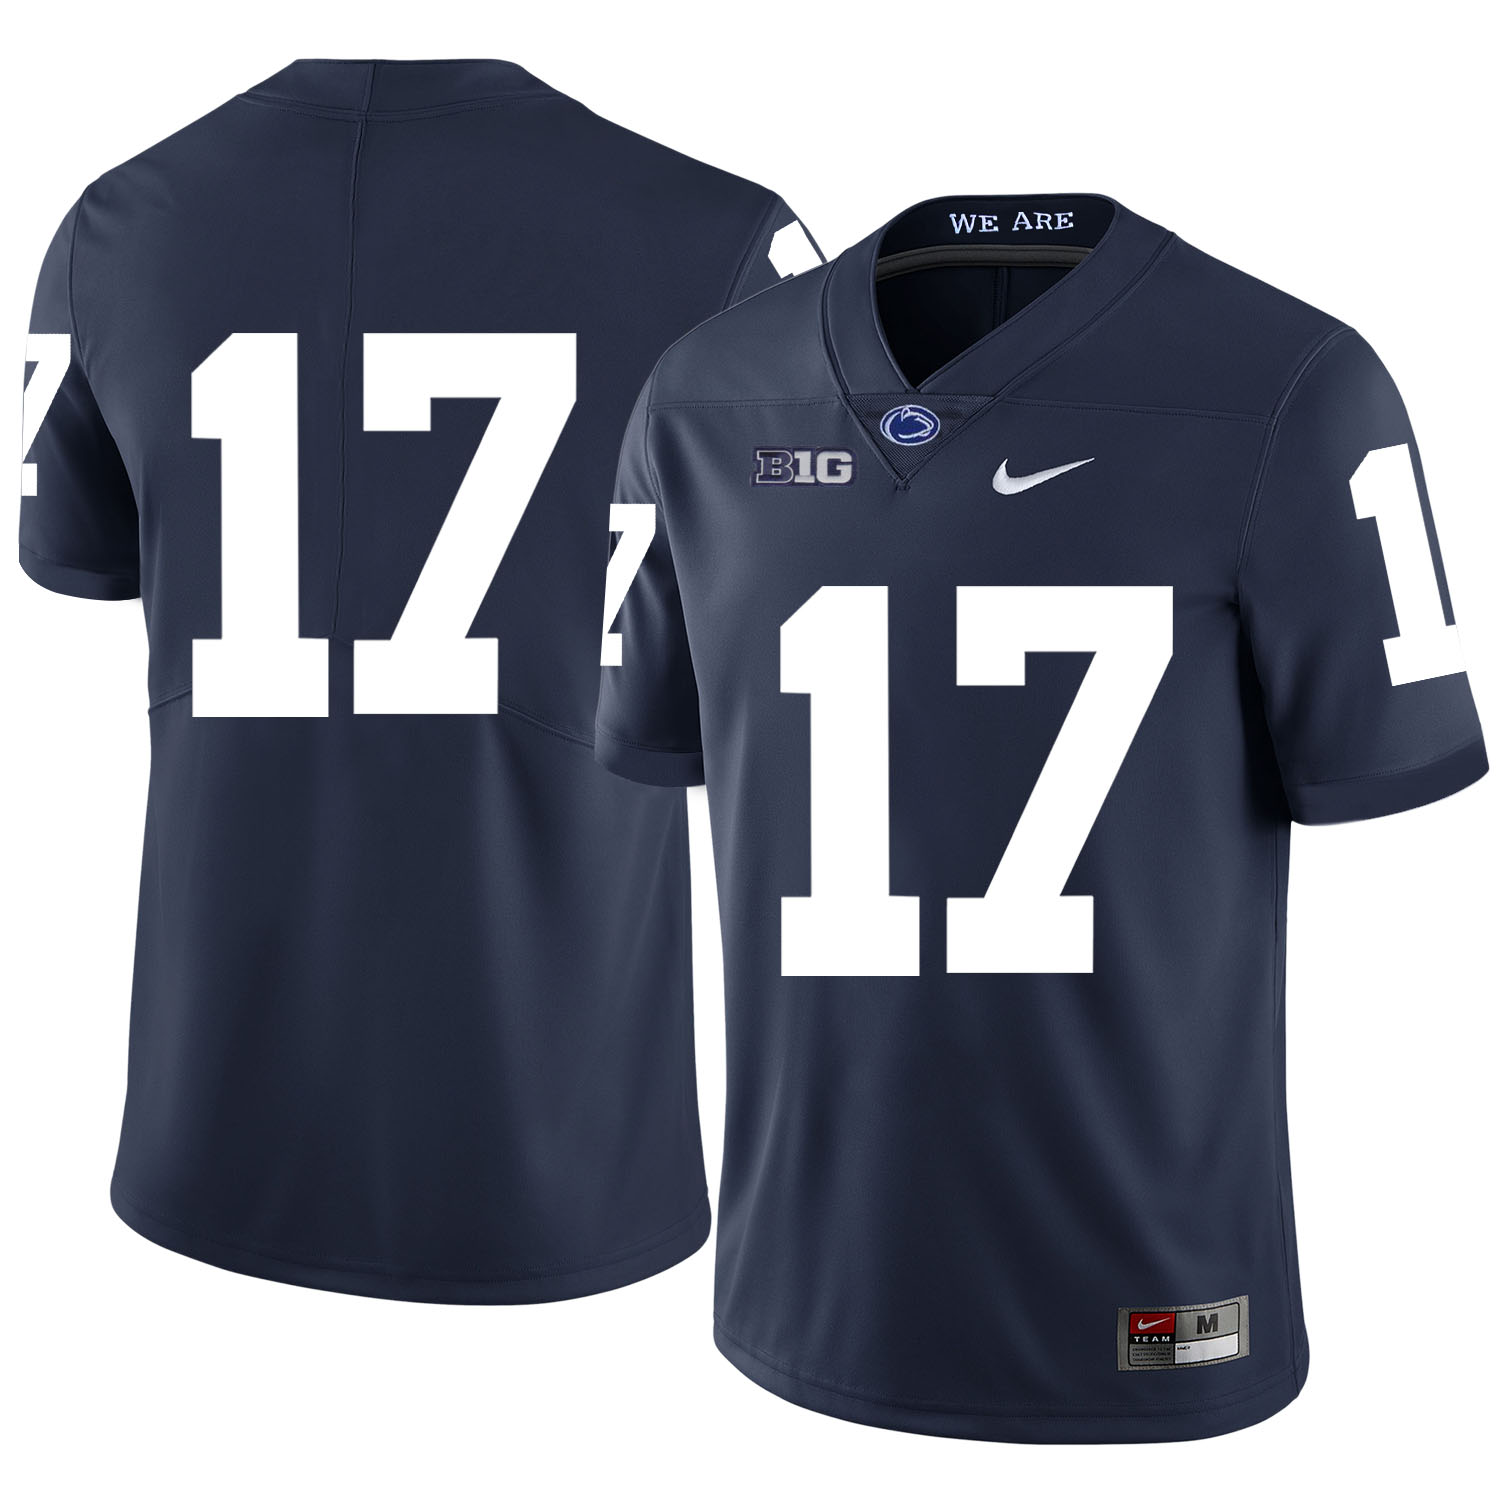 Penn State Nittany Lions 17 Generations Of Greatness Navy Nike College Football Jersey